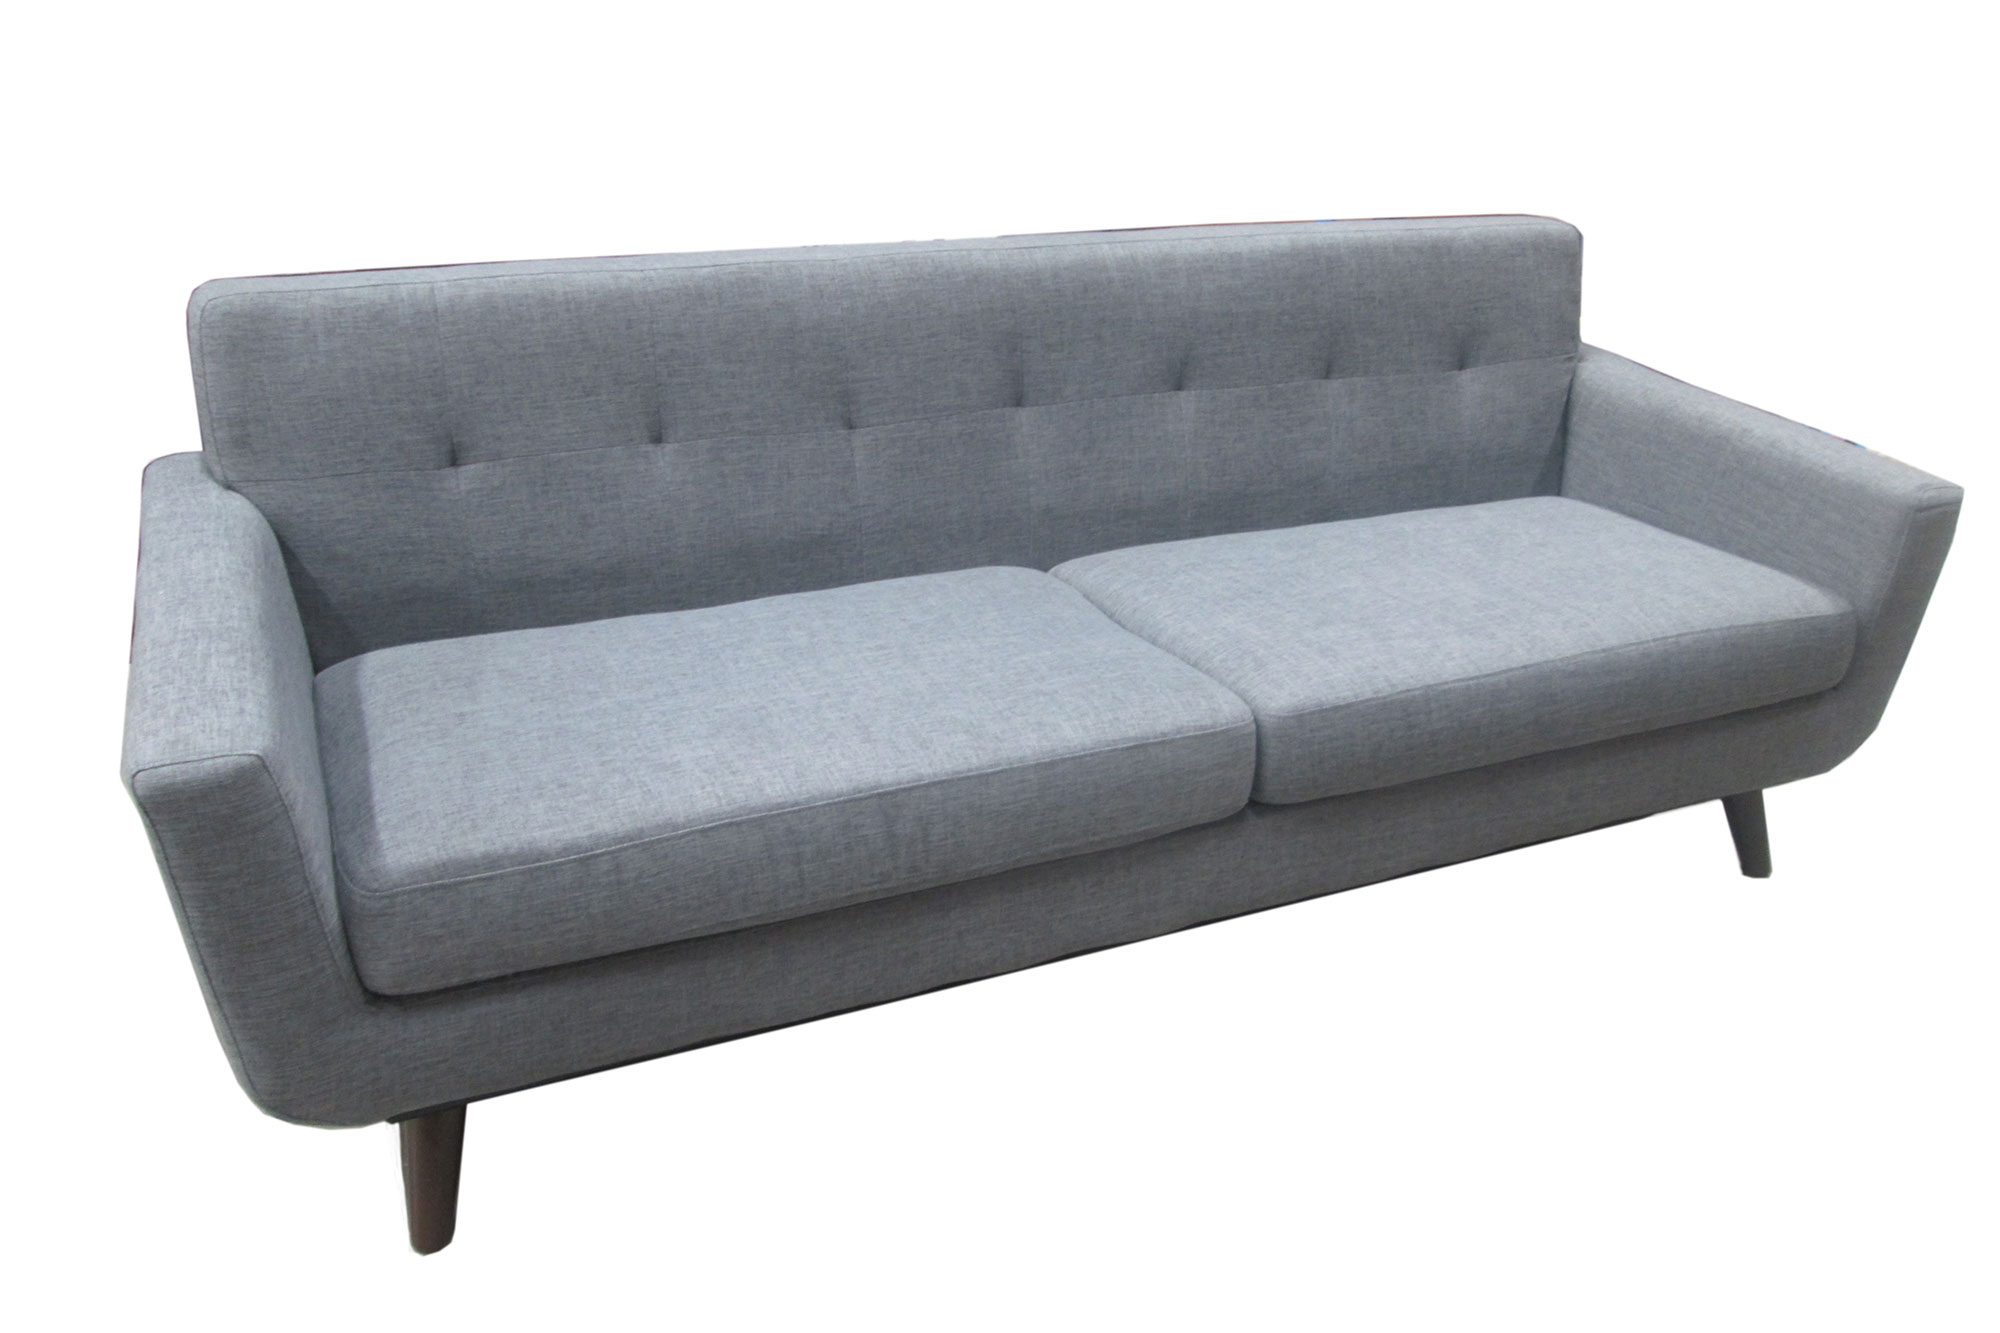 Furniture Iso Mid Century Milo Sofa Grey – Metroconnections Pertaining To Milo Sofa Chairs (View 12 of 25)